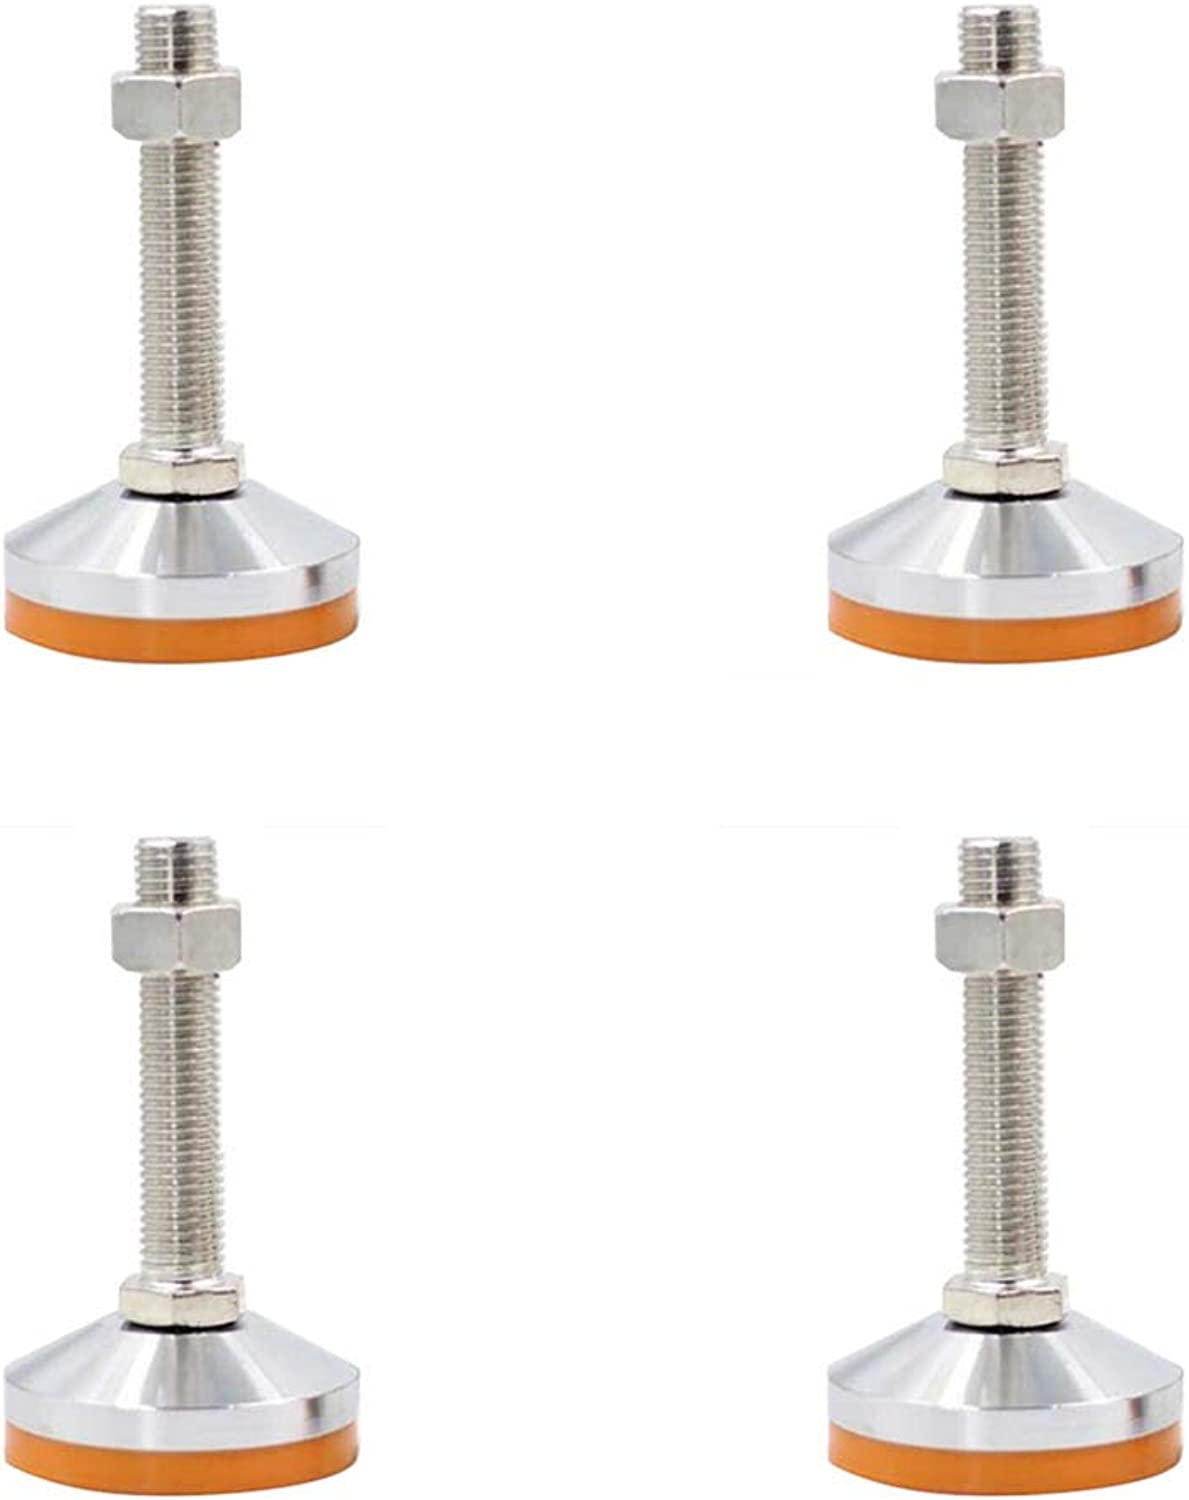 Furniture feet, Adjustable, Steel + PVC Material, Integrated Screw Production Process